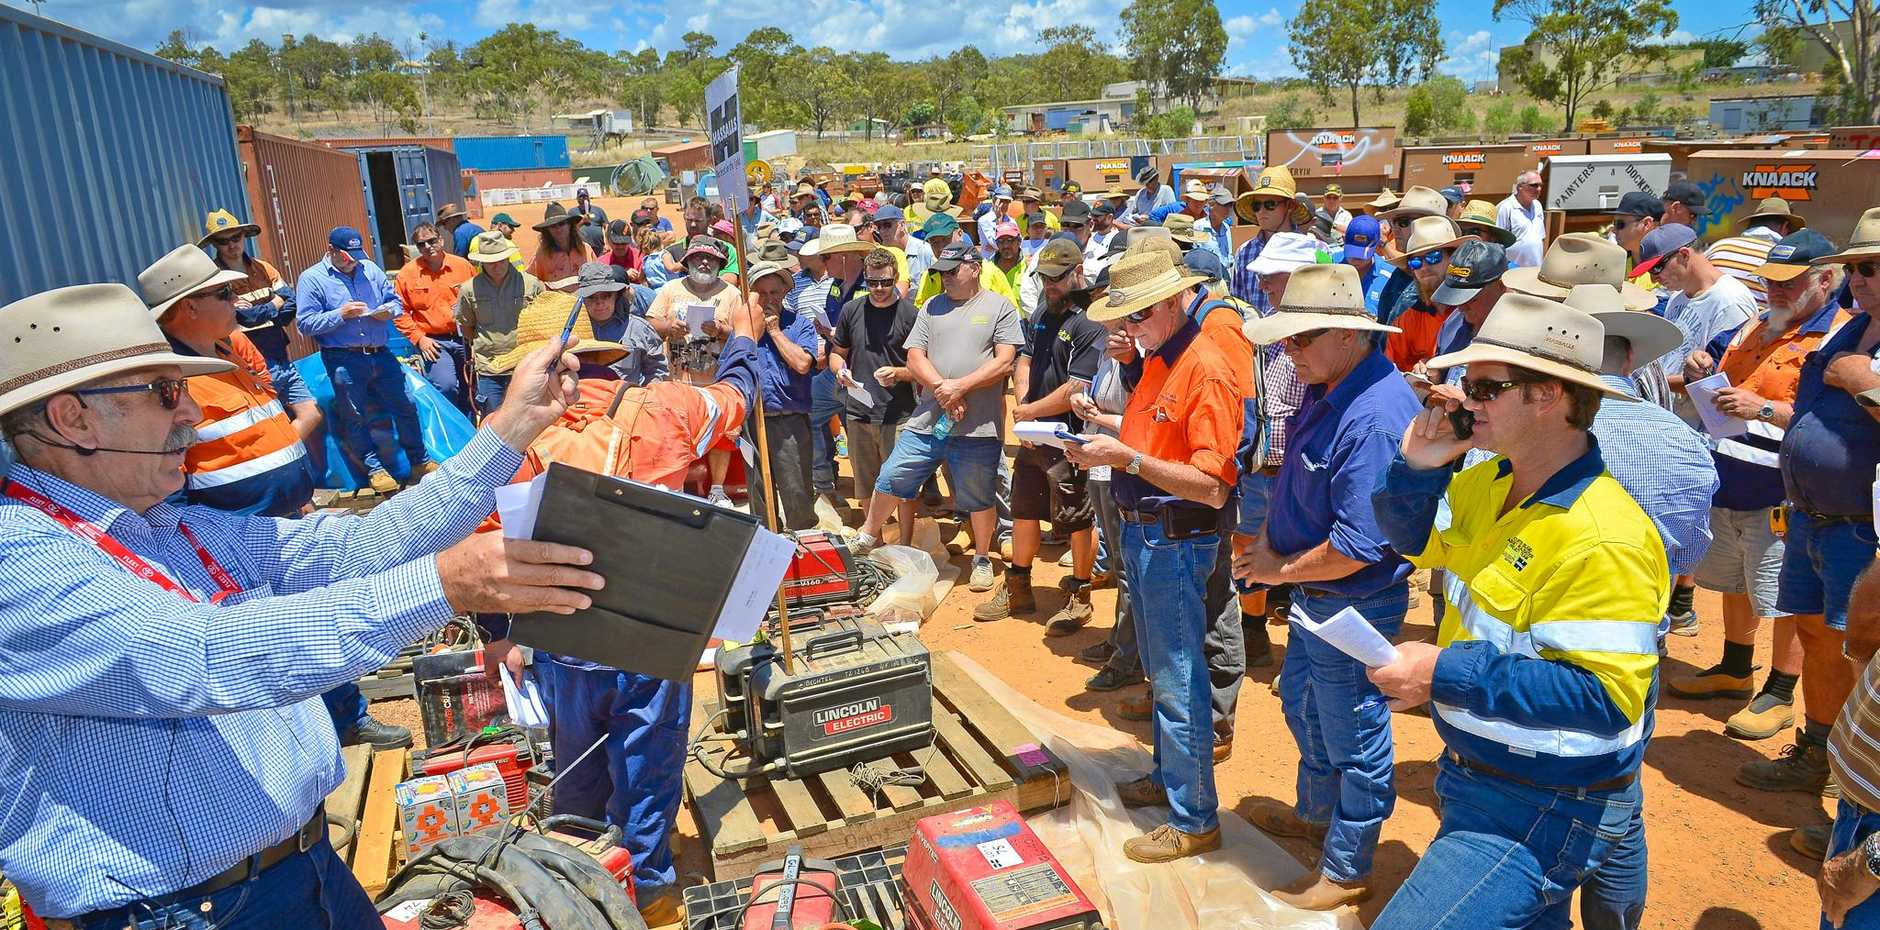 Hassalls auction of Bechtel gear attracts a lot of buyers from Brisbane, Auctioneer Steve Wall said.